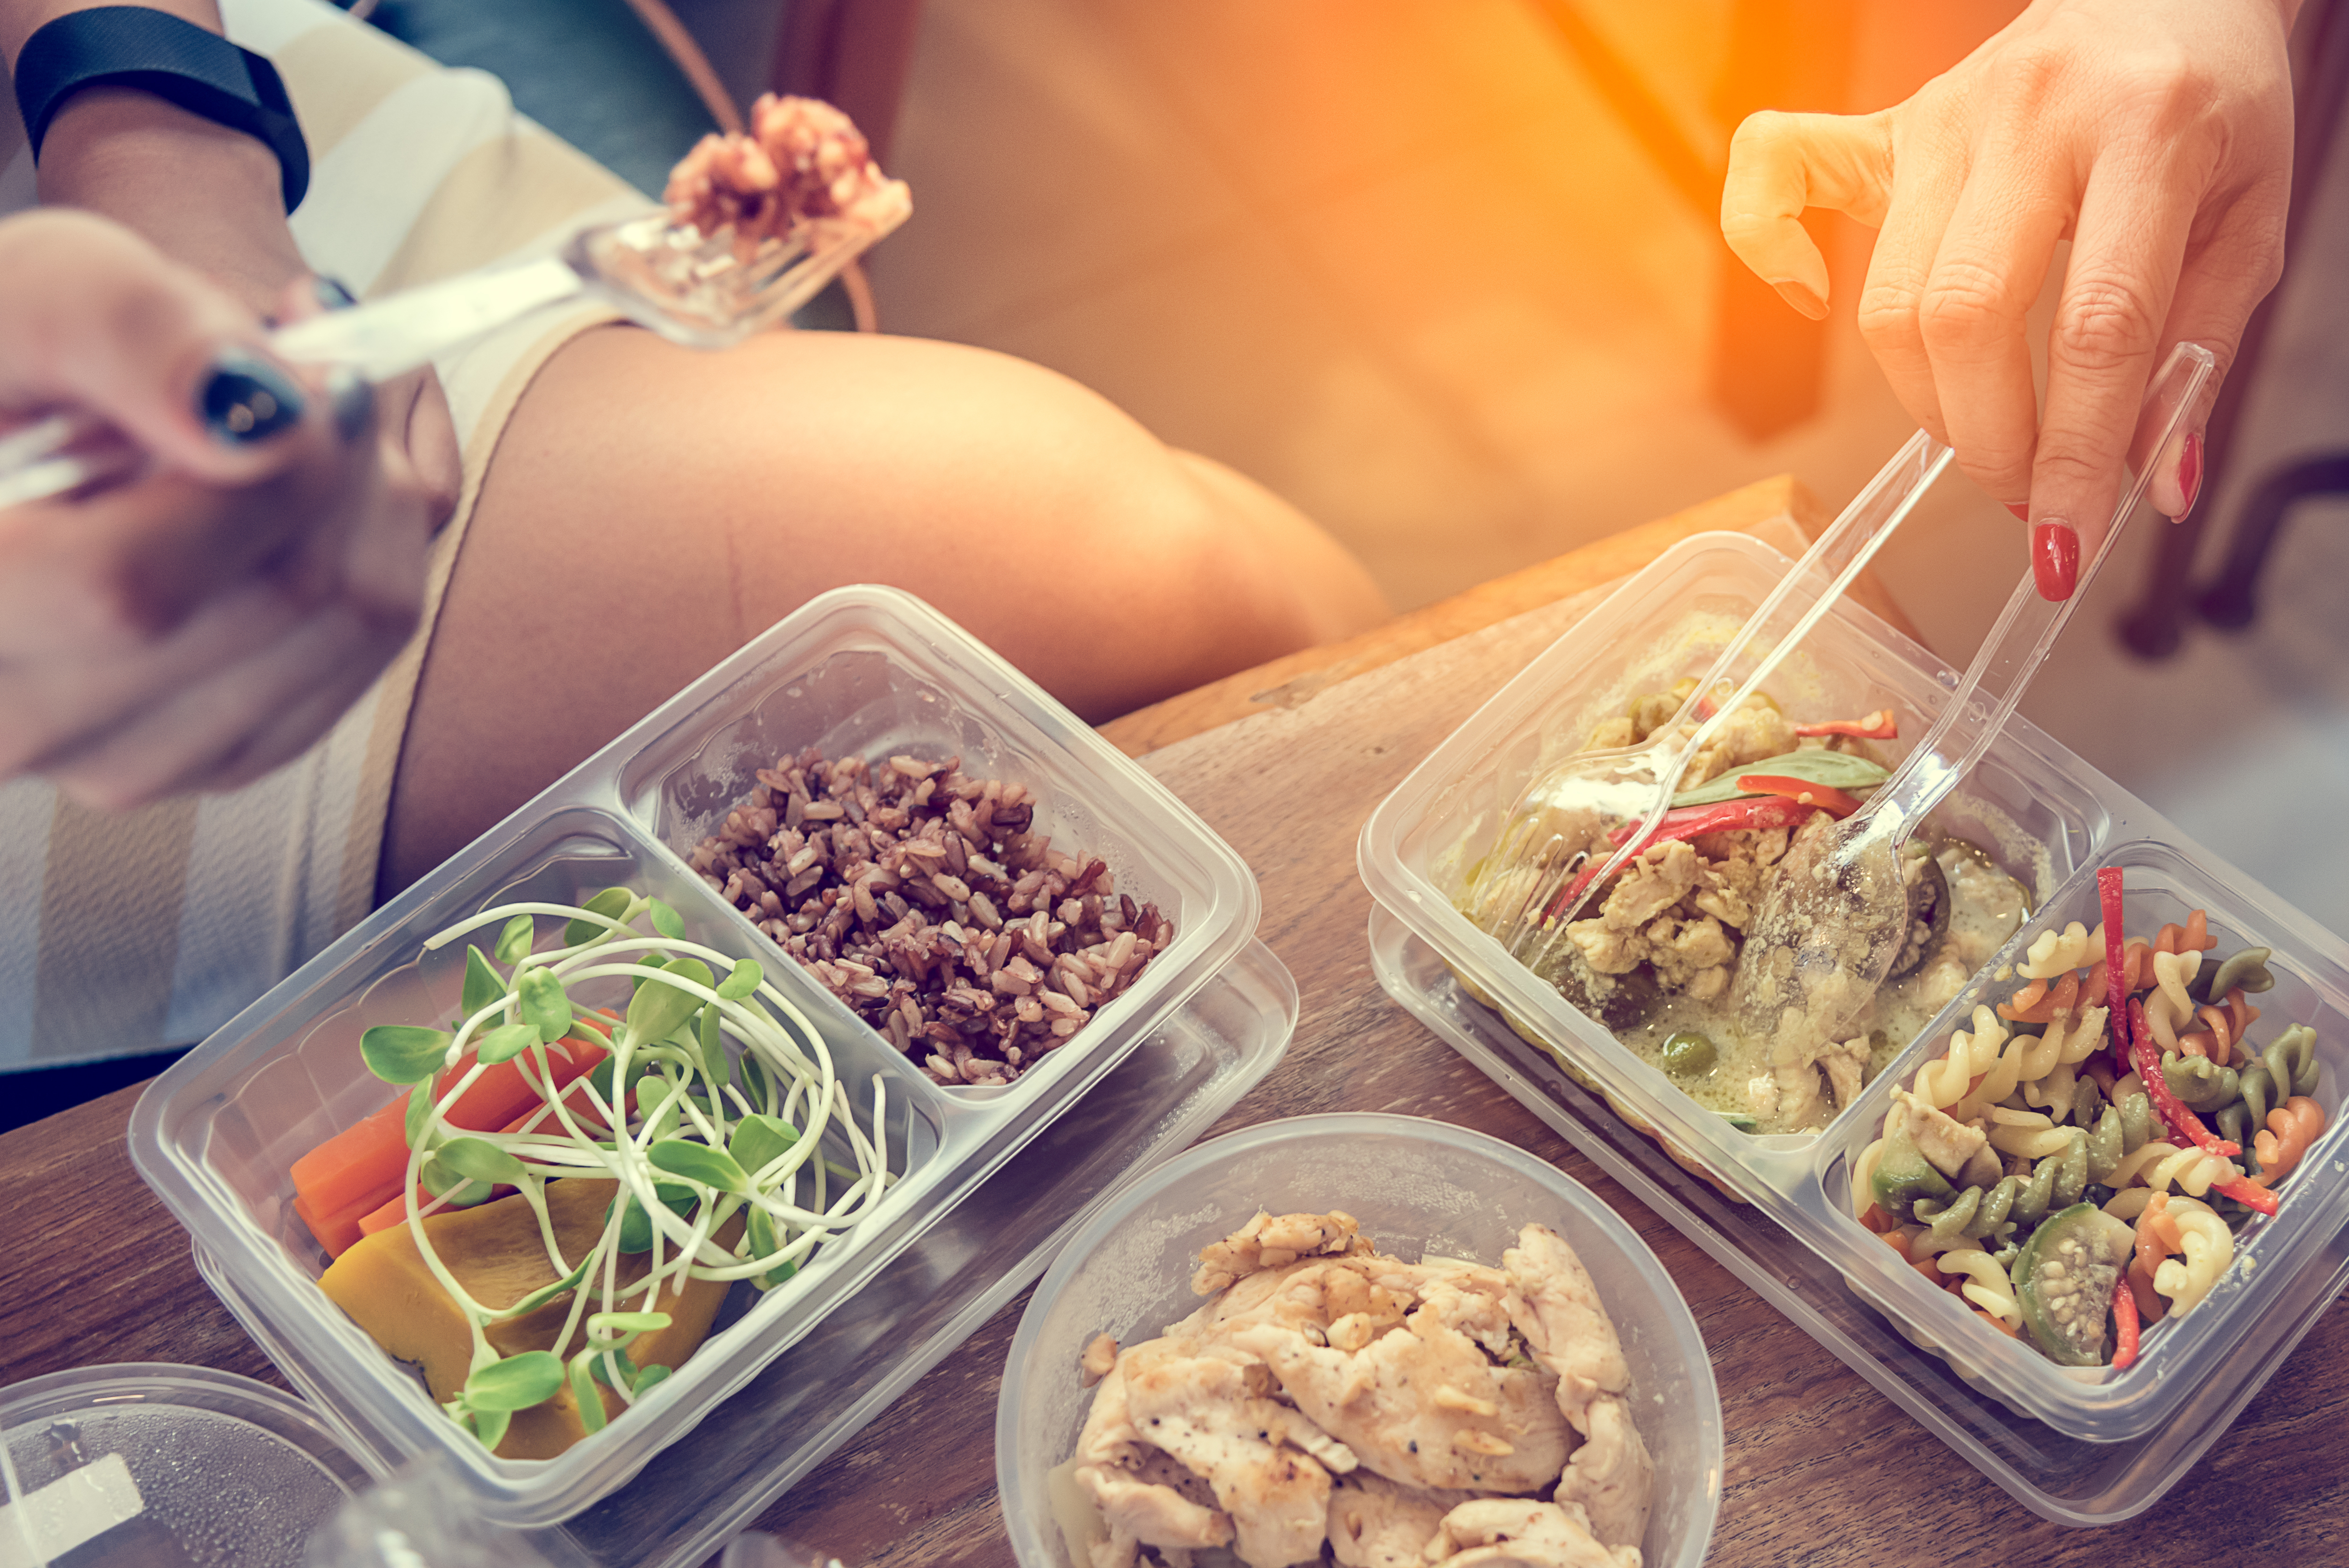 Most Takeout Containers Water Bottles And Plastic Tubs Or Jars Made To Hold Margarine Yogurt Whipped Topping Foods Such As Cream Cheese